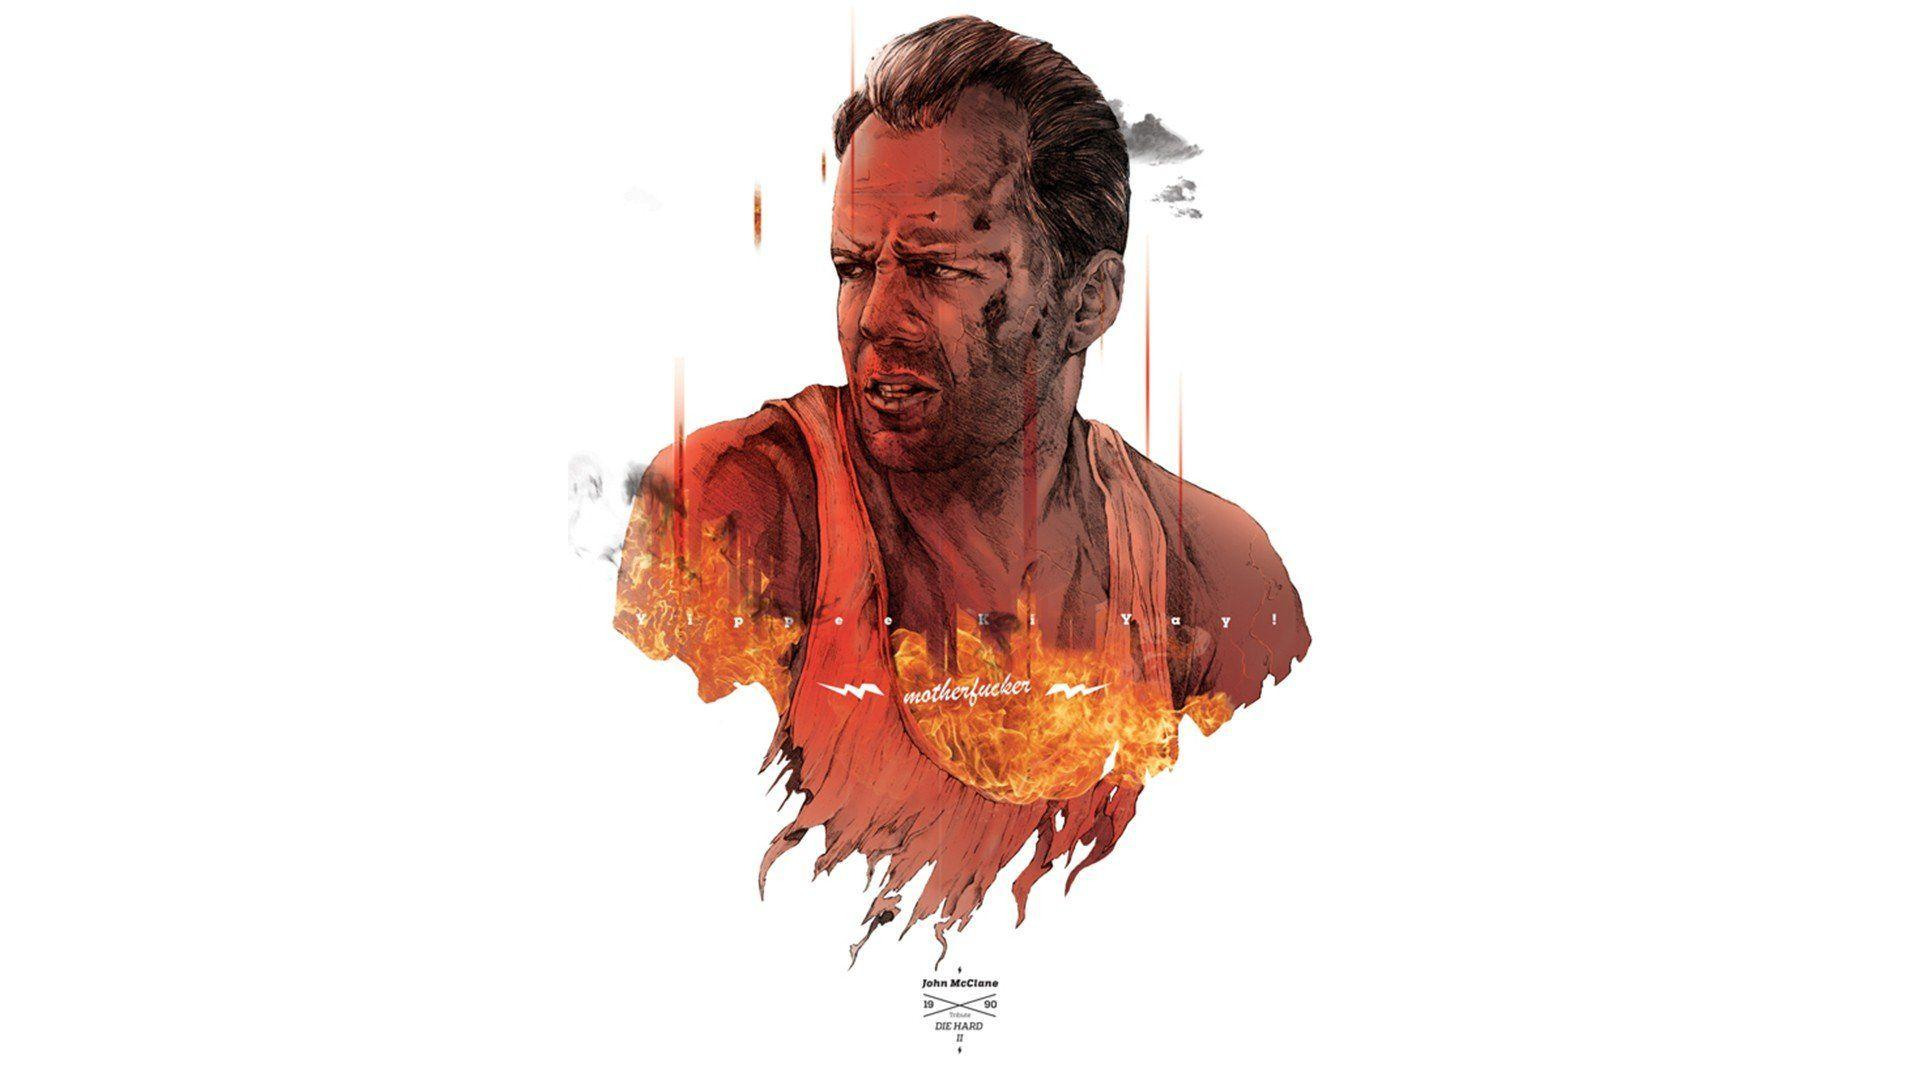 Movies Die Hard Bruce Willis fan art john mcclain action movie